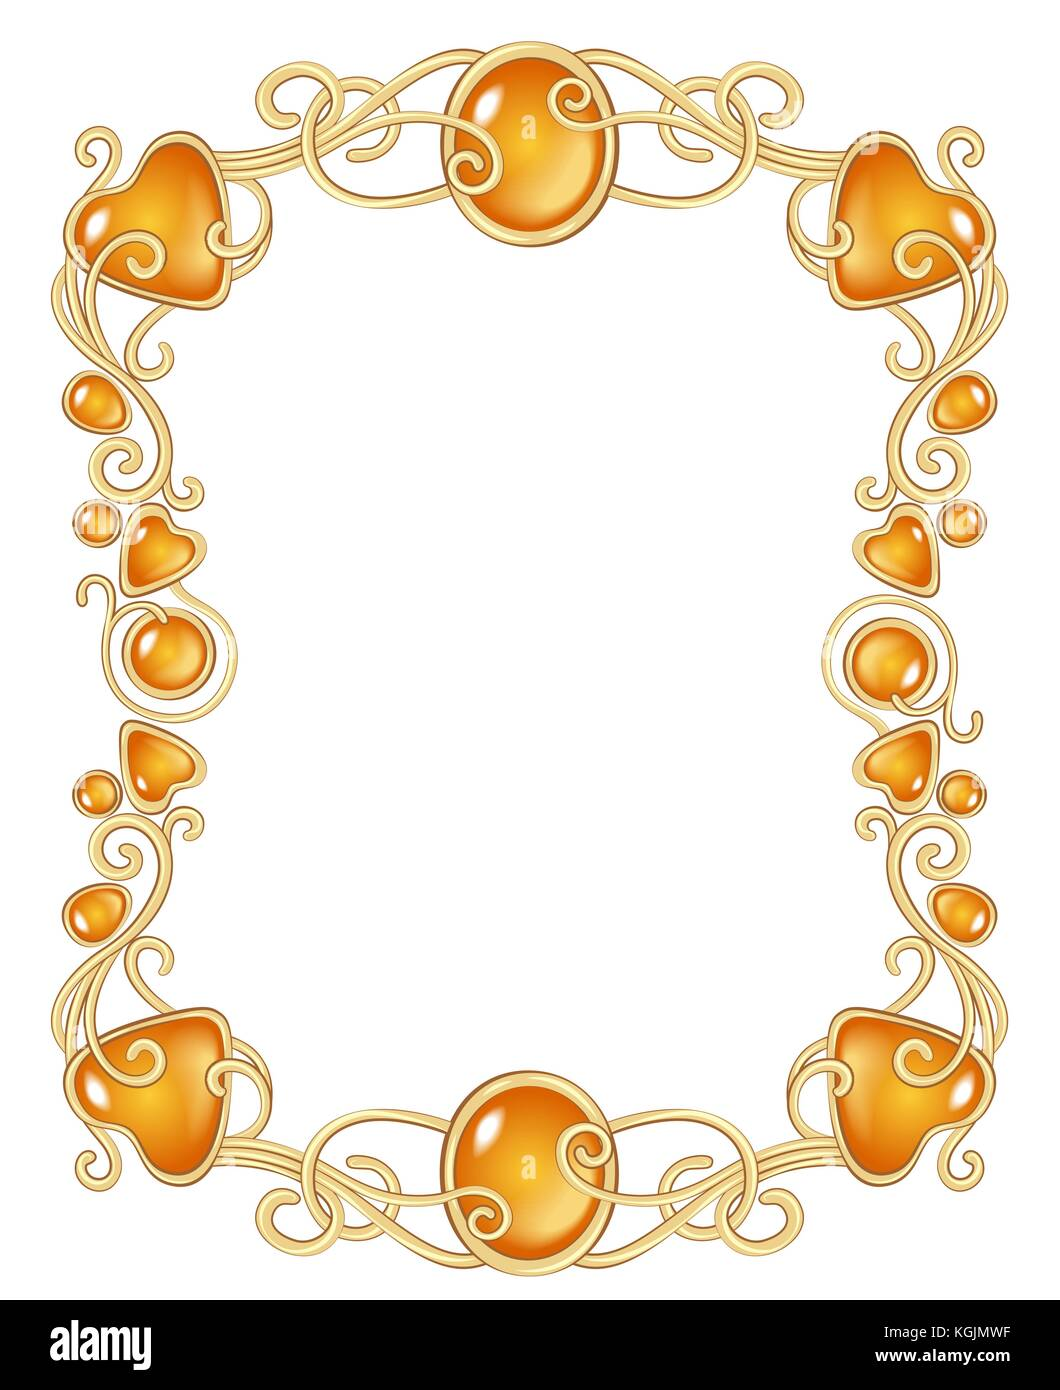 fantasy jewel frame template Stock Vector Art & Illustration, Vector ...